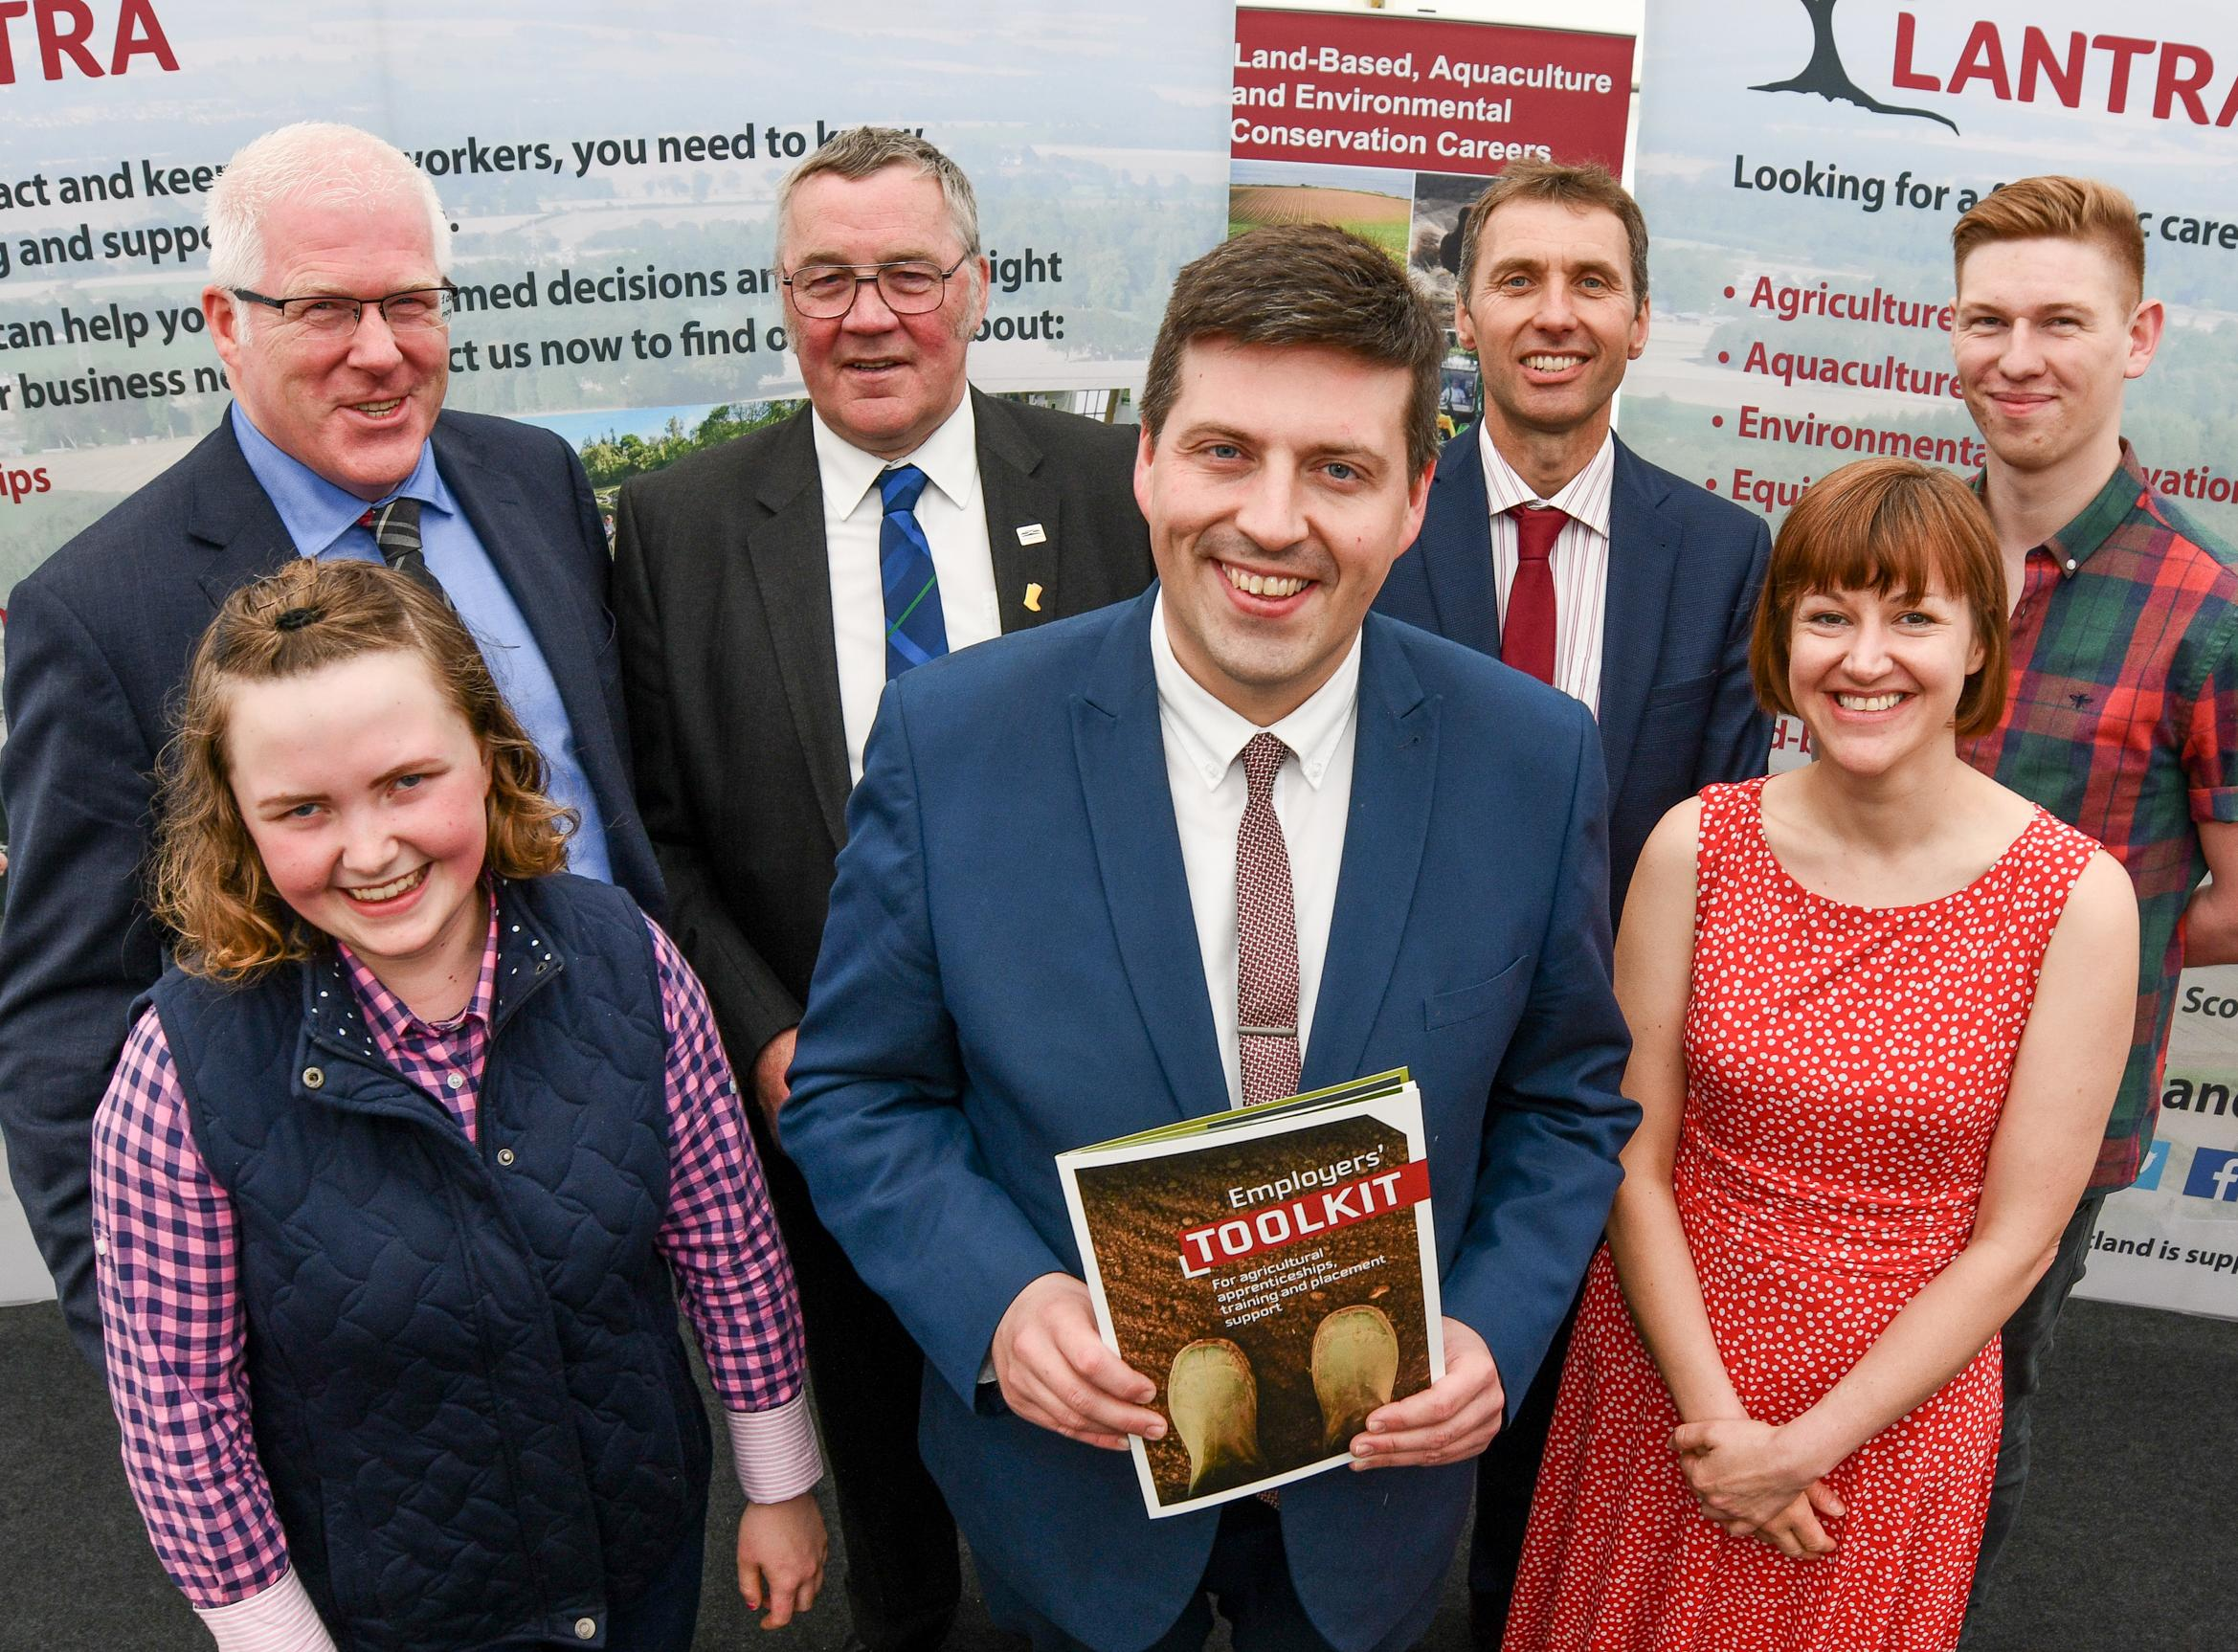 Speakers and apprentices at employers' toolkit launch